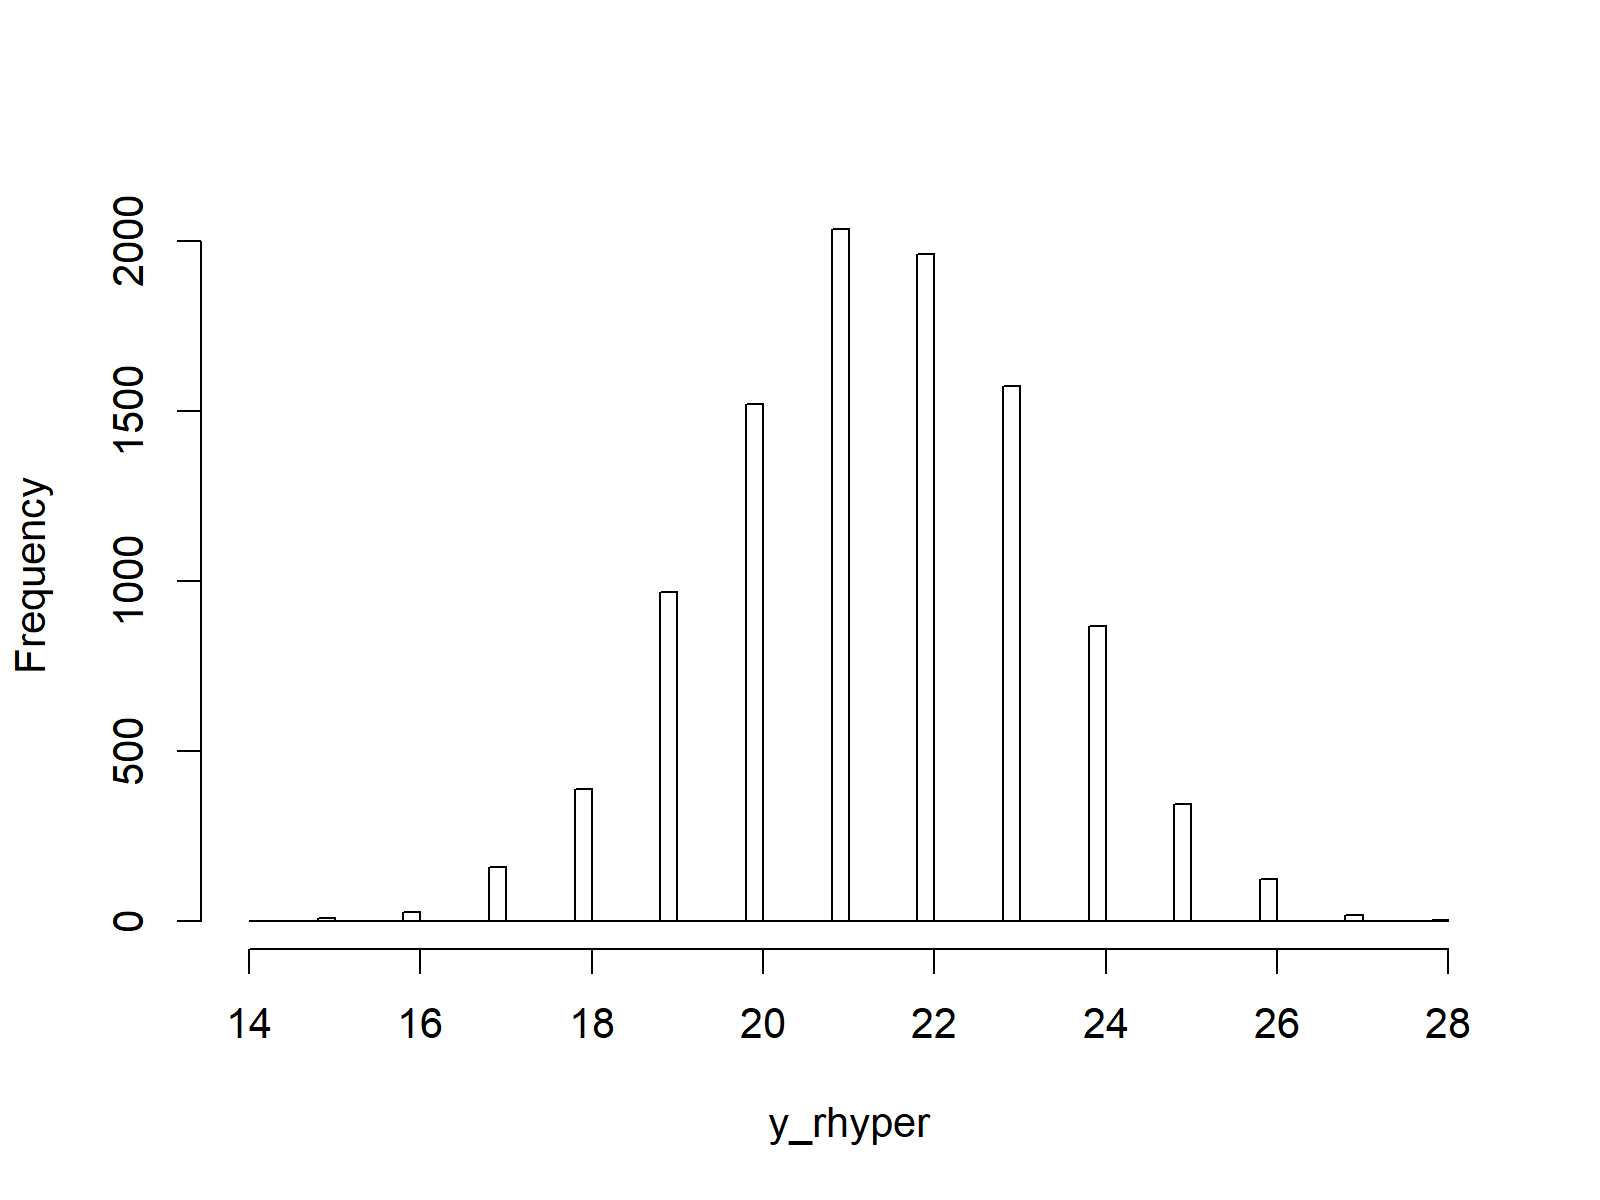 https://statisticsglobe.com/wp-content/uploads/2019/09/figure-4-rhyper-hist-random-numbers-in-r.png